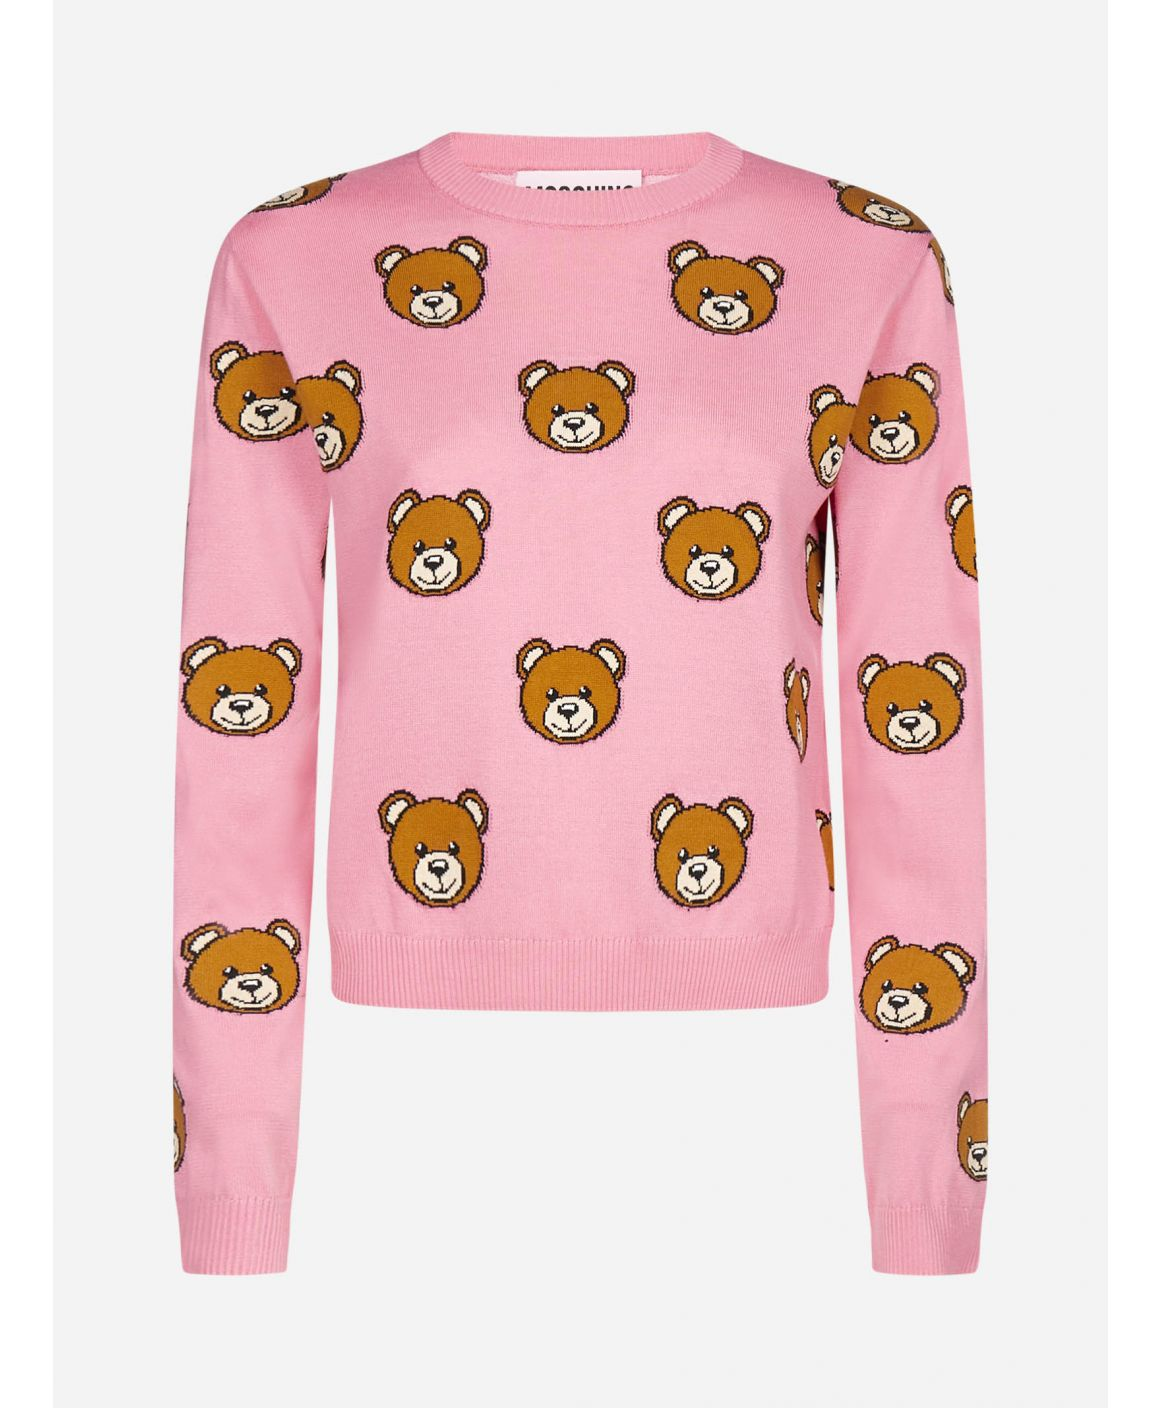 Teddy-all-over cotton sweater